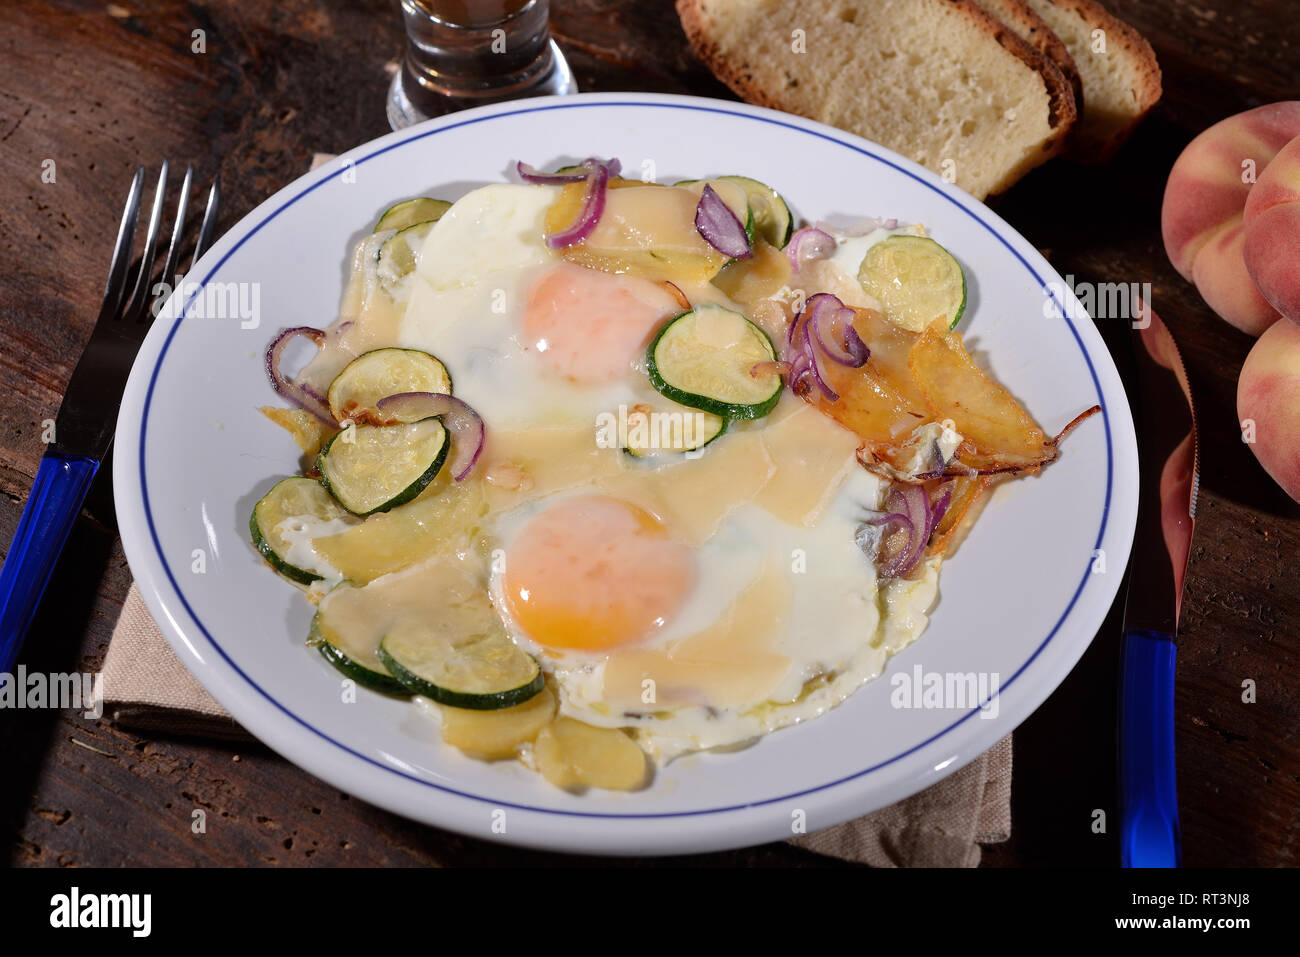 fried egg dish with zucchini and potatoes - Stock Image